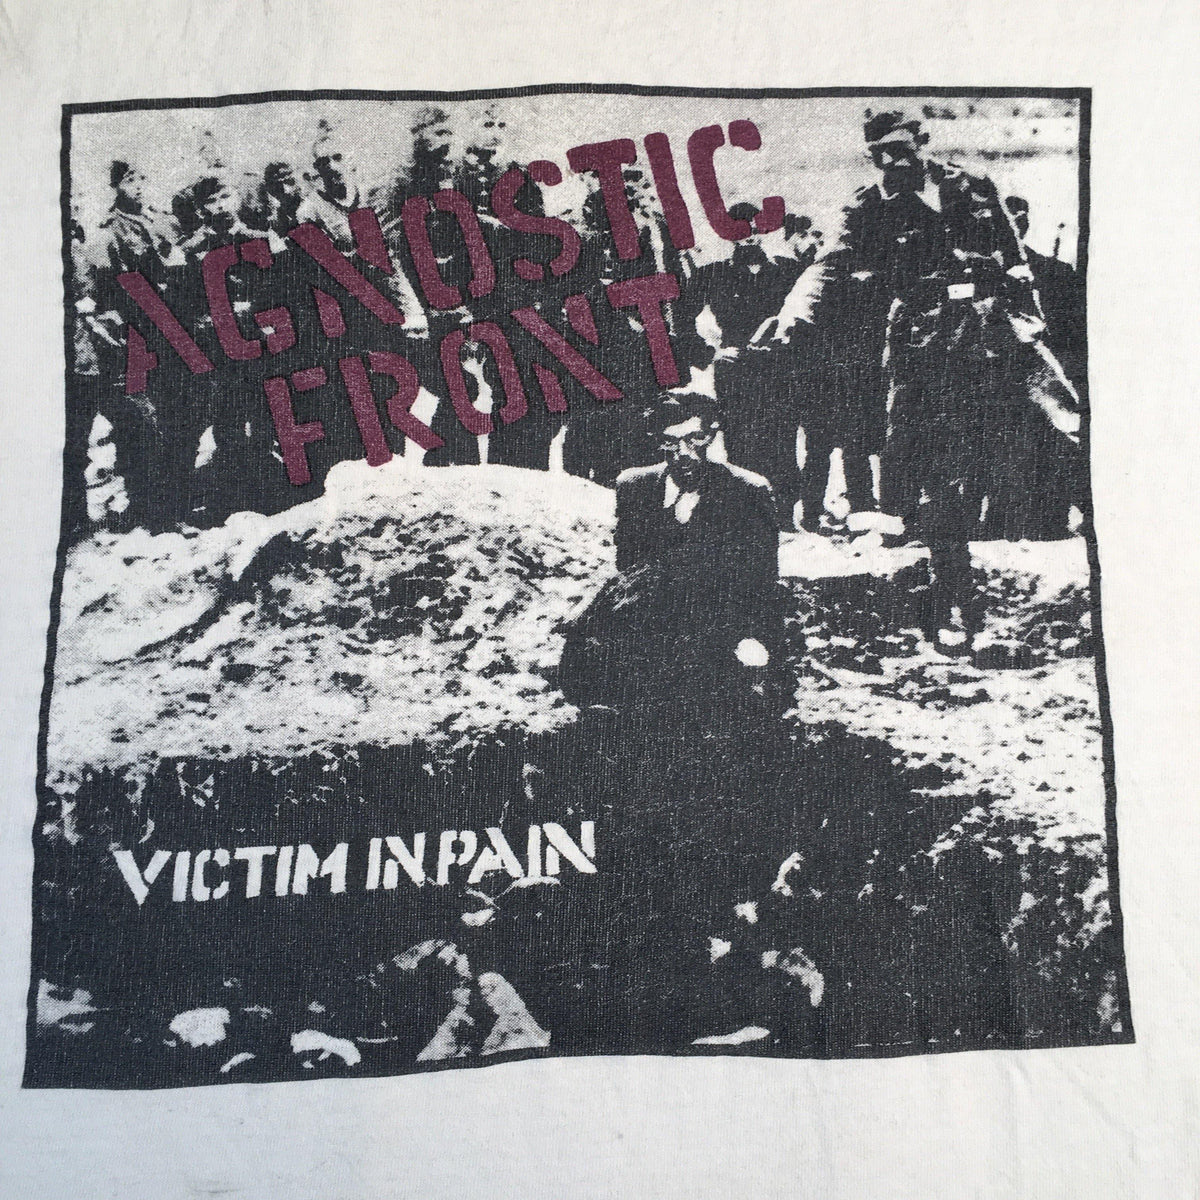 Vintage Original Agnostic Front Victim In Pain Shirt detail